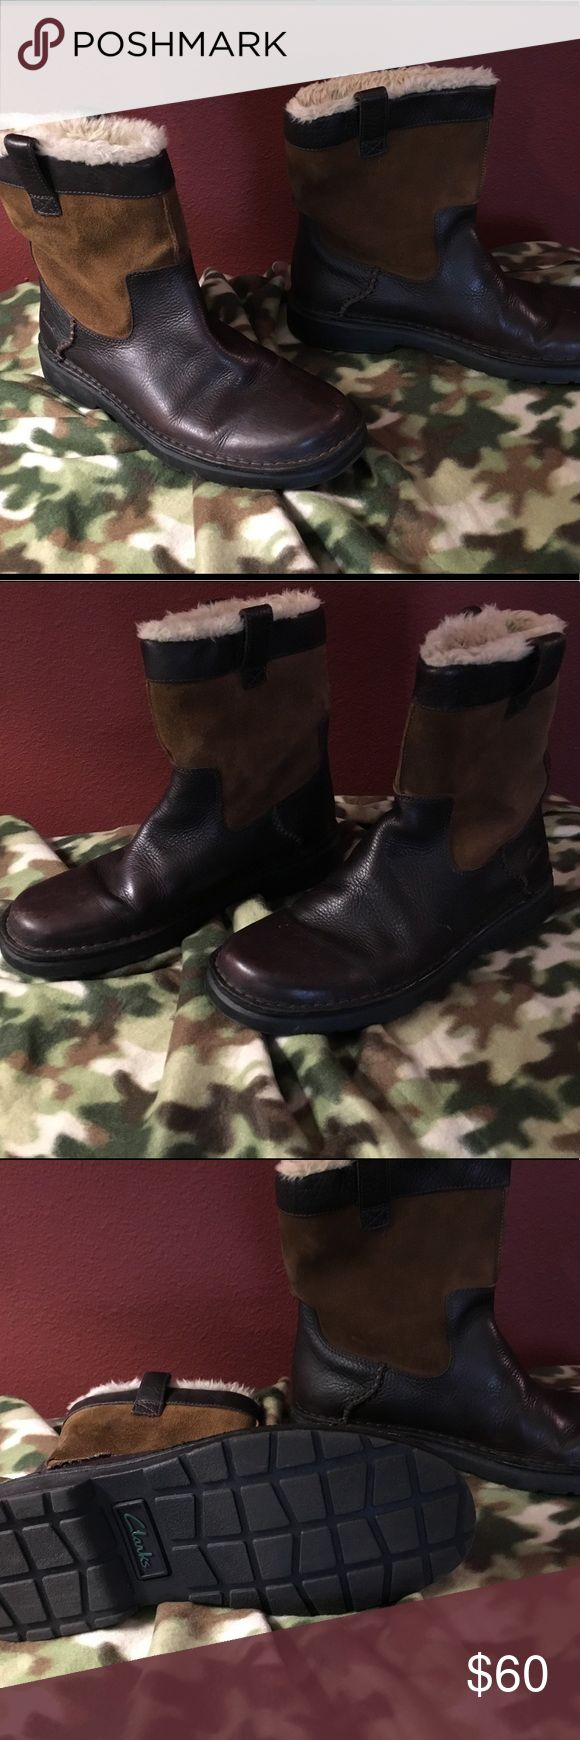 Clark Lined Leather Boots Fully Lined Water 💦 Proof Comfy Winter Boots For Men Clarks Shoes Winter & Rain Boots